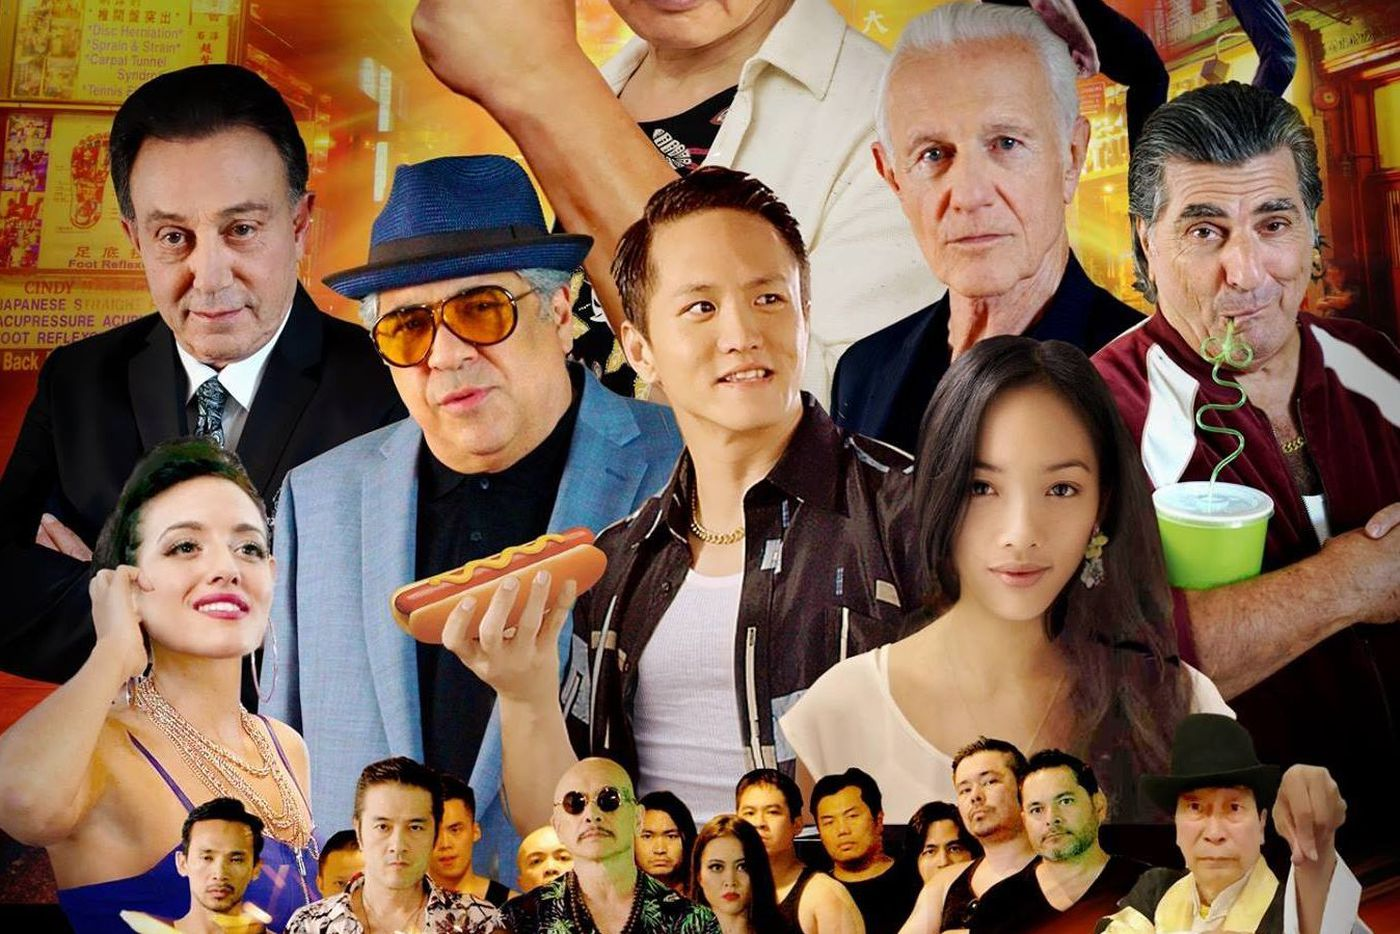 Crew of Philly-shot mob film 'Made in Chinatown' sues producer over unpaid wages